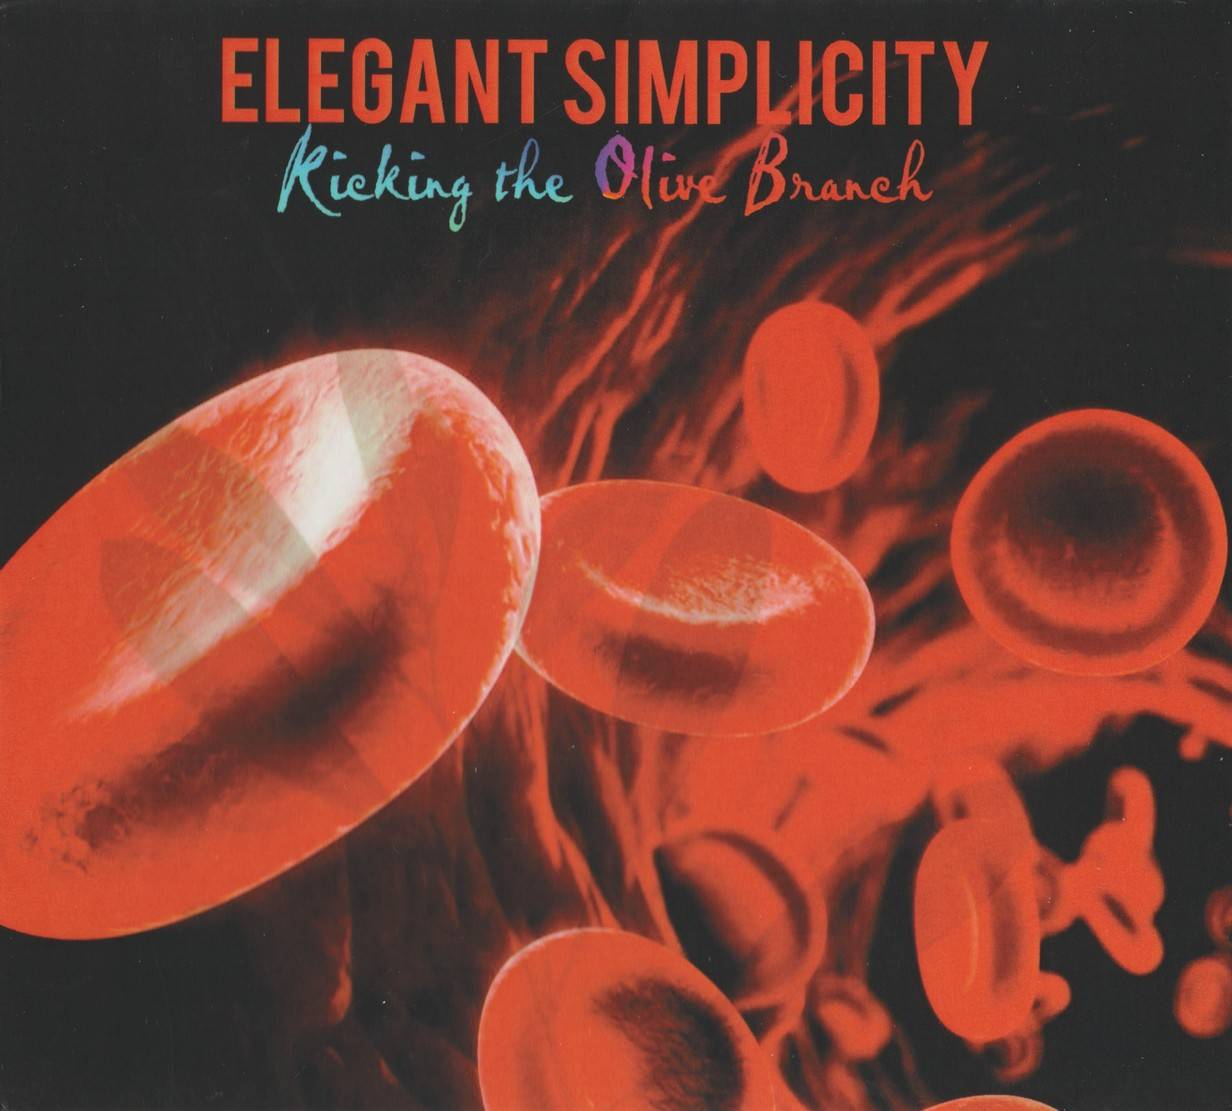 Elegant Simplicity - Kicking the Olive Branch (2017) {Proximity Records ESCD 20170602-01}